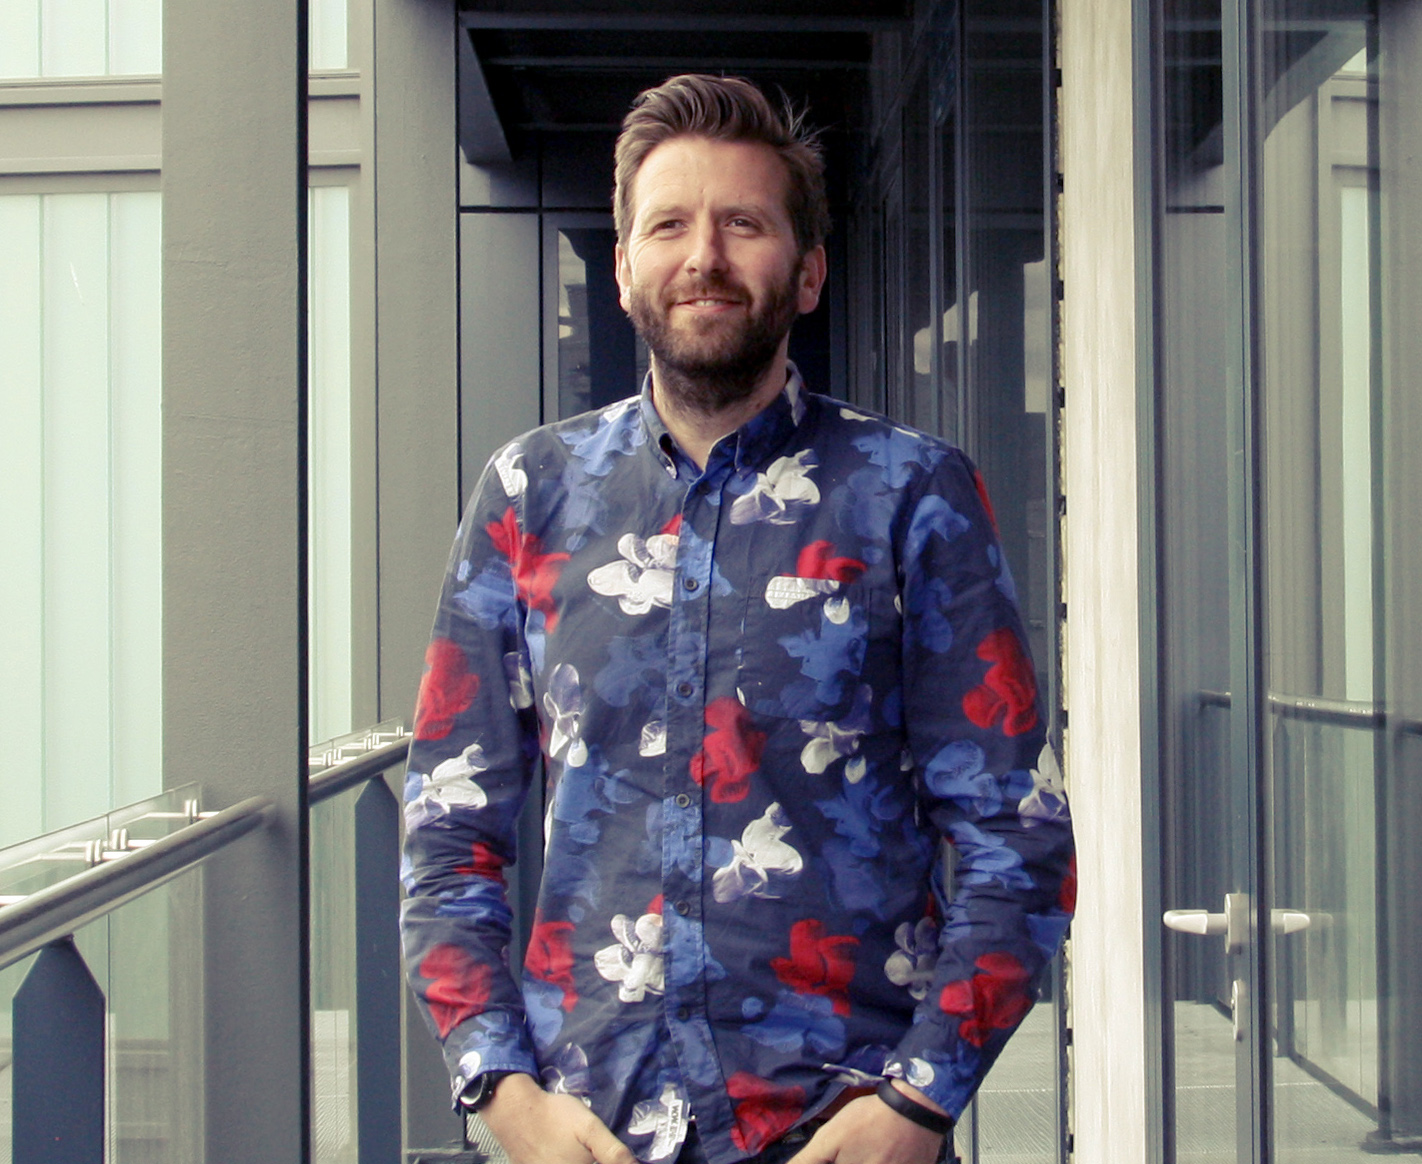 James Greenfield, founder and creative director, Koto